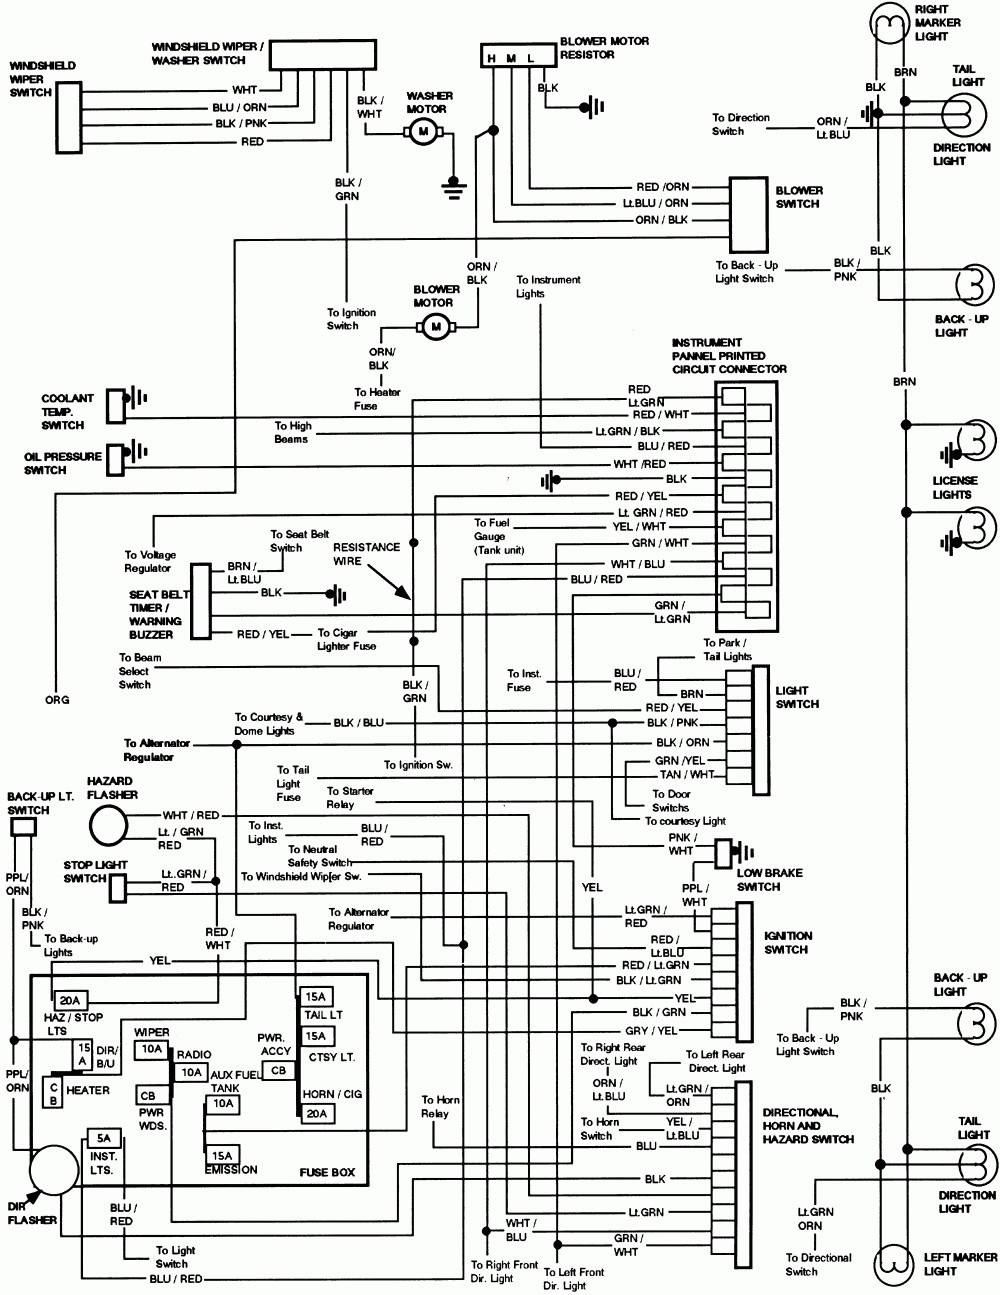 medium resolution of 90 ford ranger wiring diagram wiring diagram article review1990 ford ranger wiring harness diagram schematic wiring